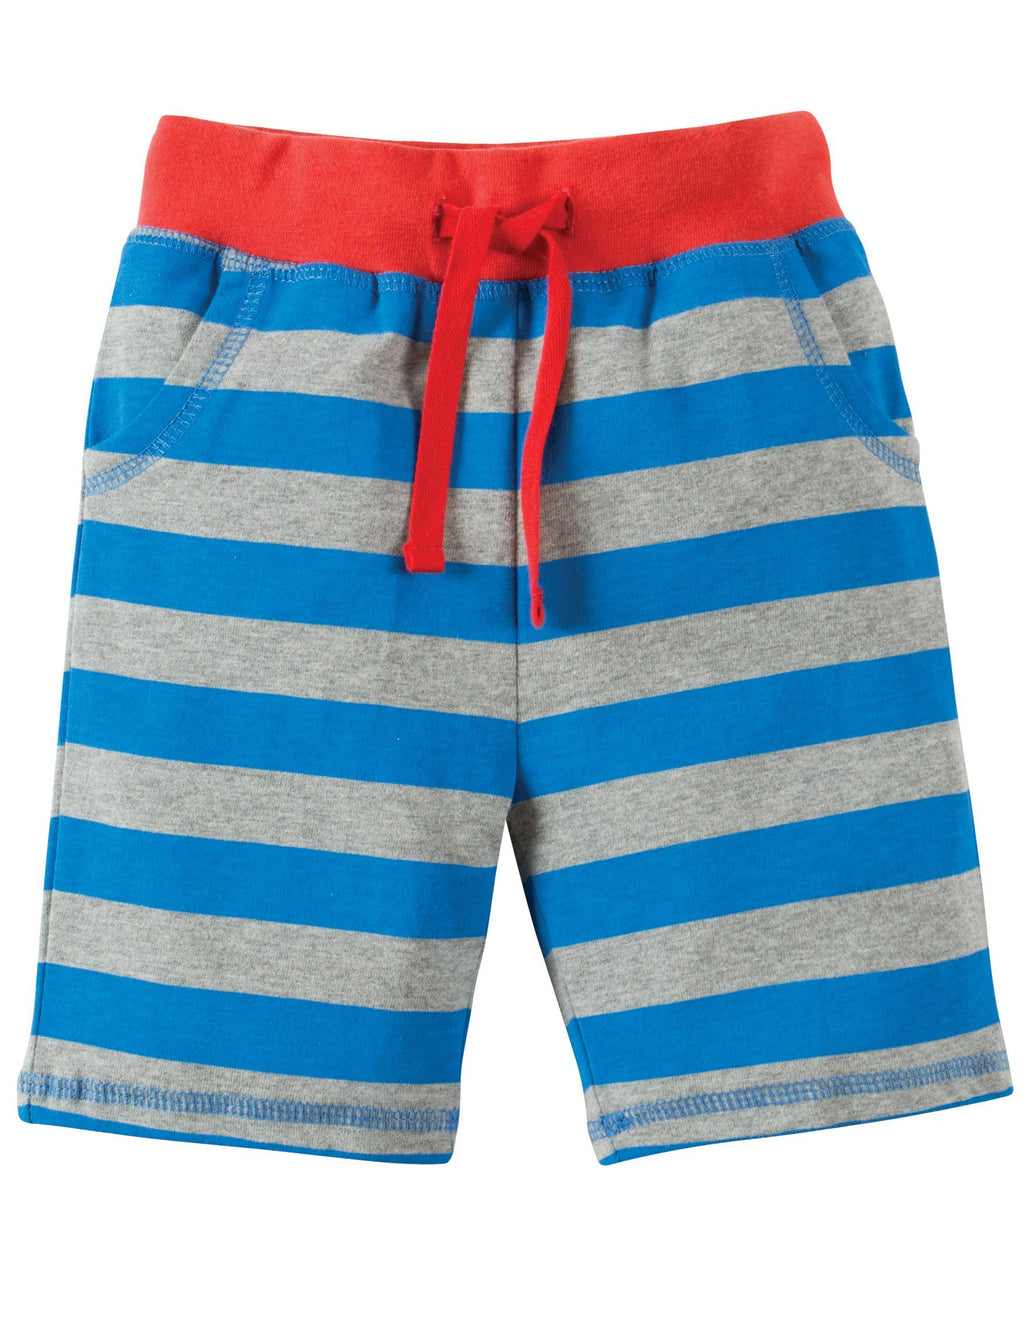 Little stripy shorts Bottoms Frugi